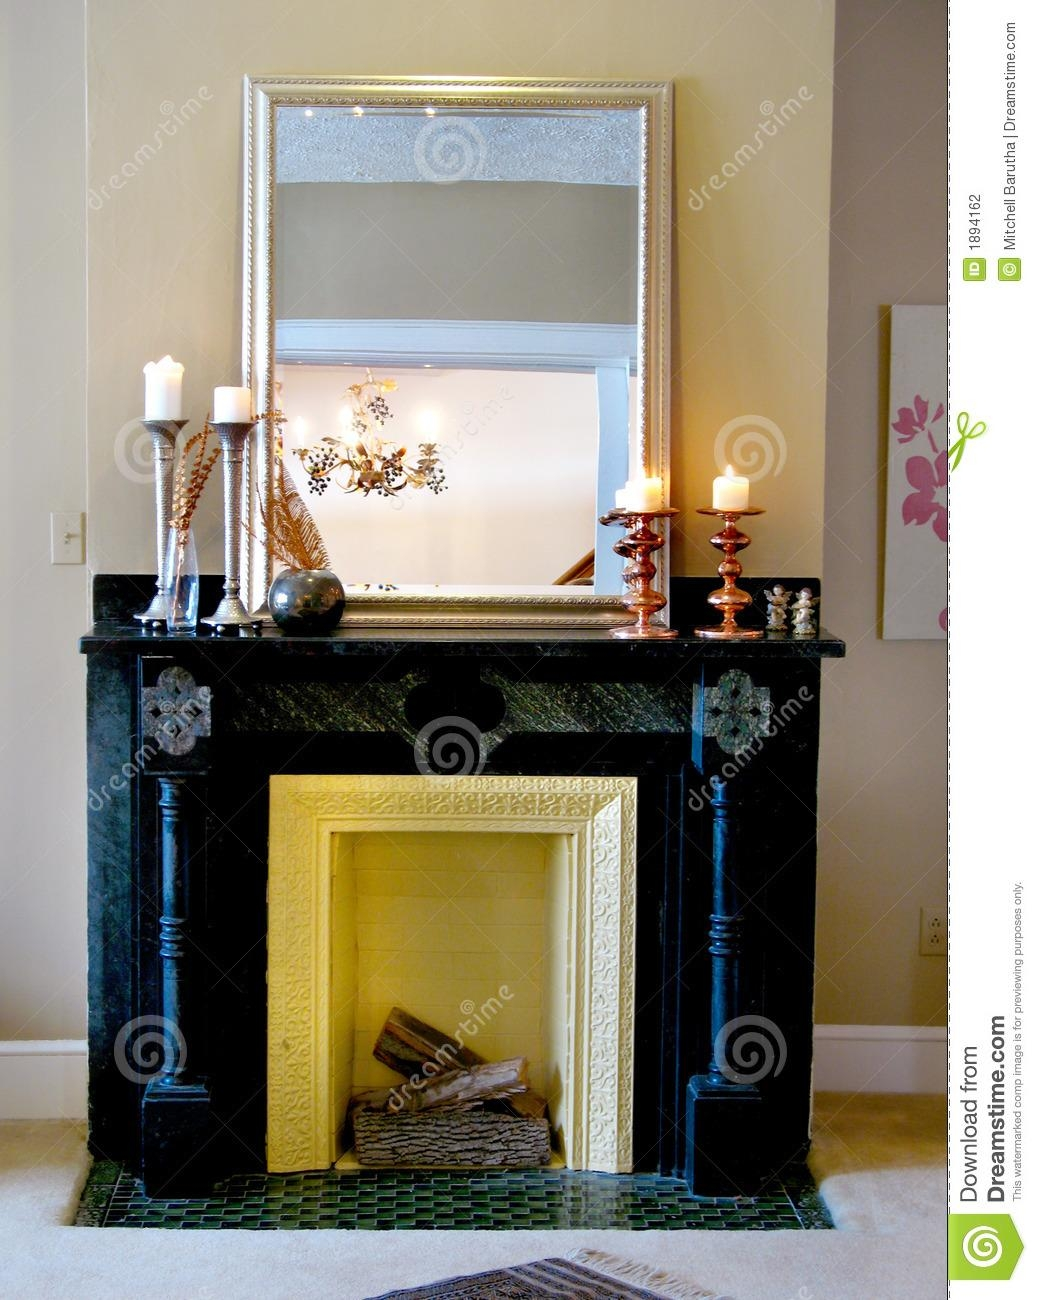 Black Mantle With Mirror & Candlesticks Stock Photography – Image Inside Mantle Mirror (Image 11 of 20)